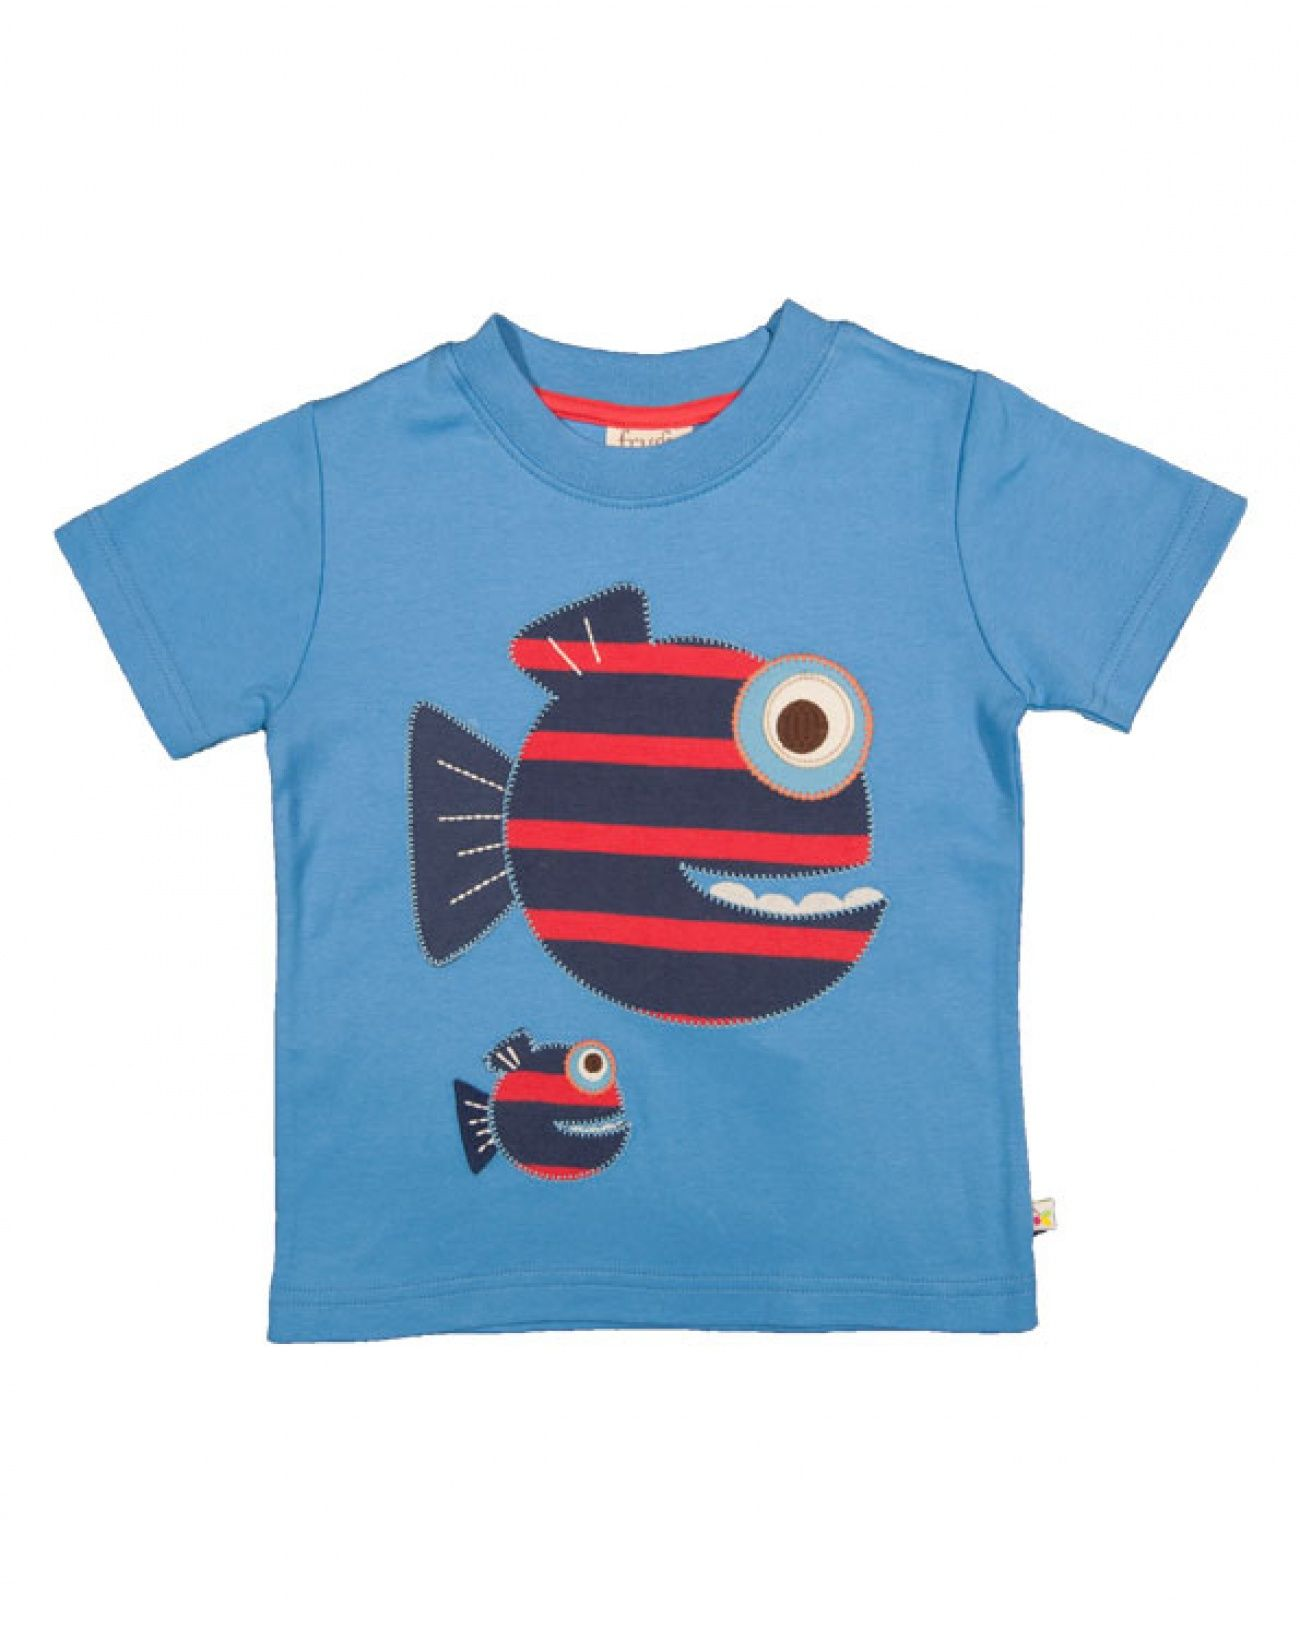 Frugi Stripy Fish Applique T-shirt | Boys | Pinterest ...